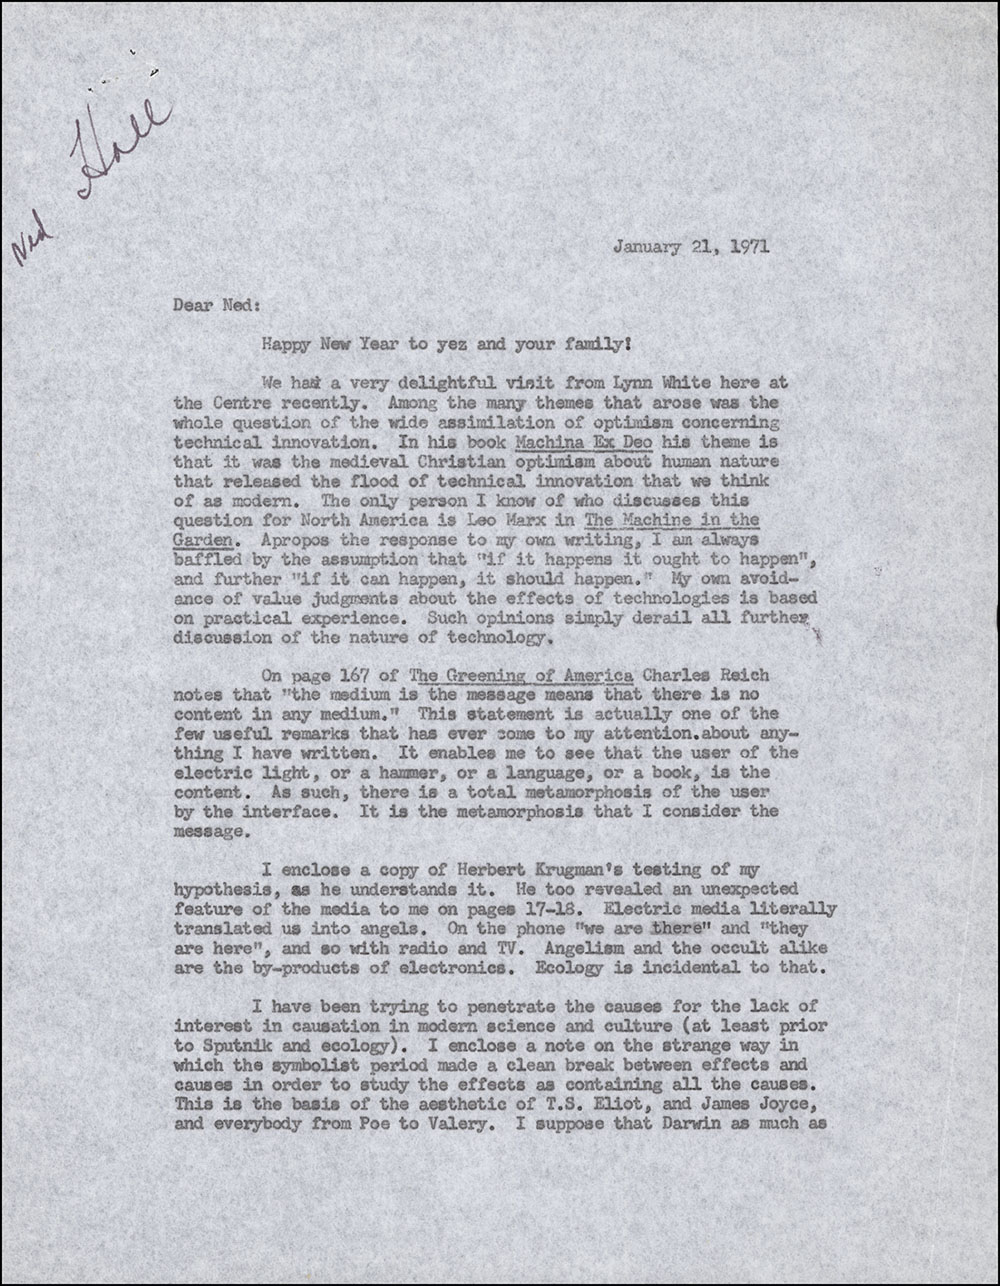 Letter dated January 21, 1971 to Edward Hall (page 1)